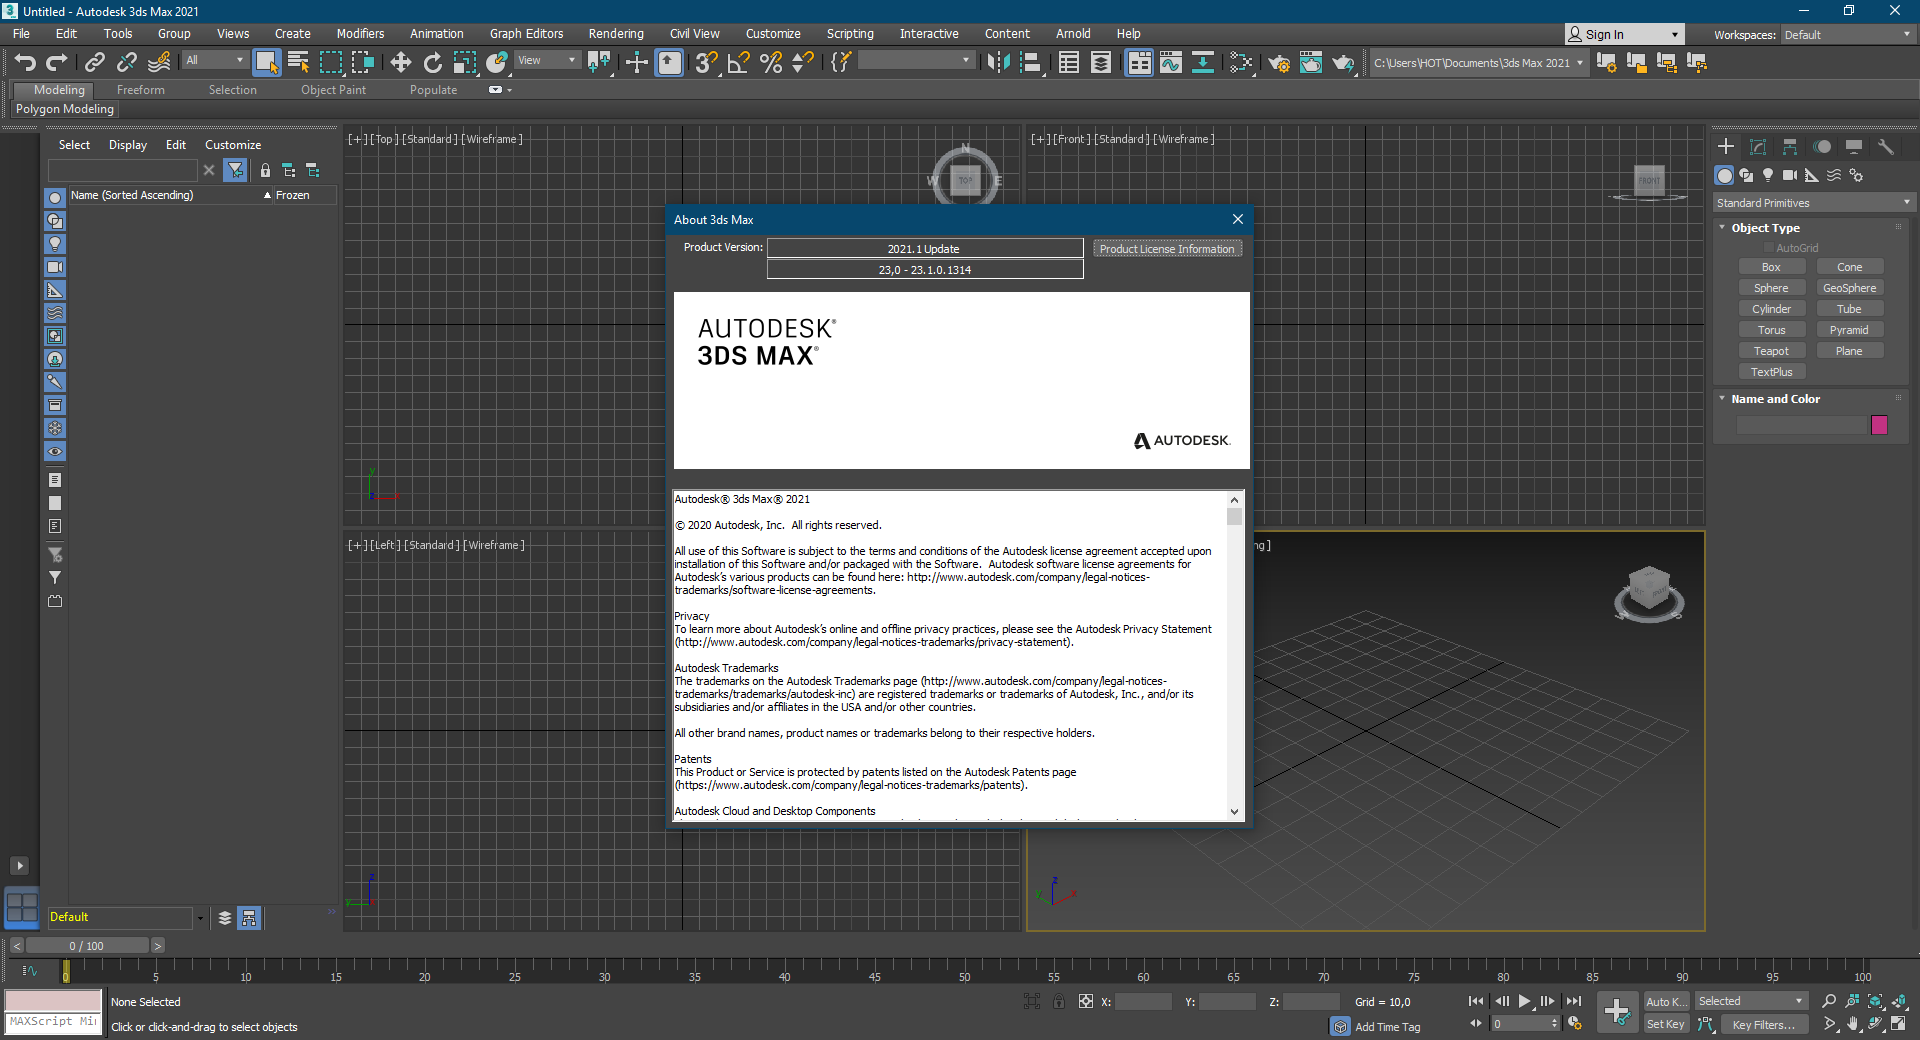 Working with Autodesk 3ds Max 2021.1 full license